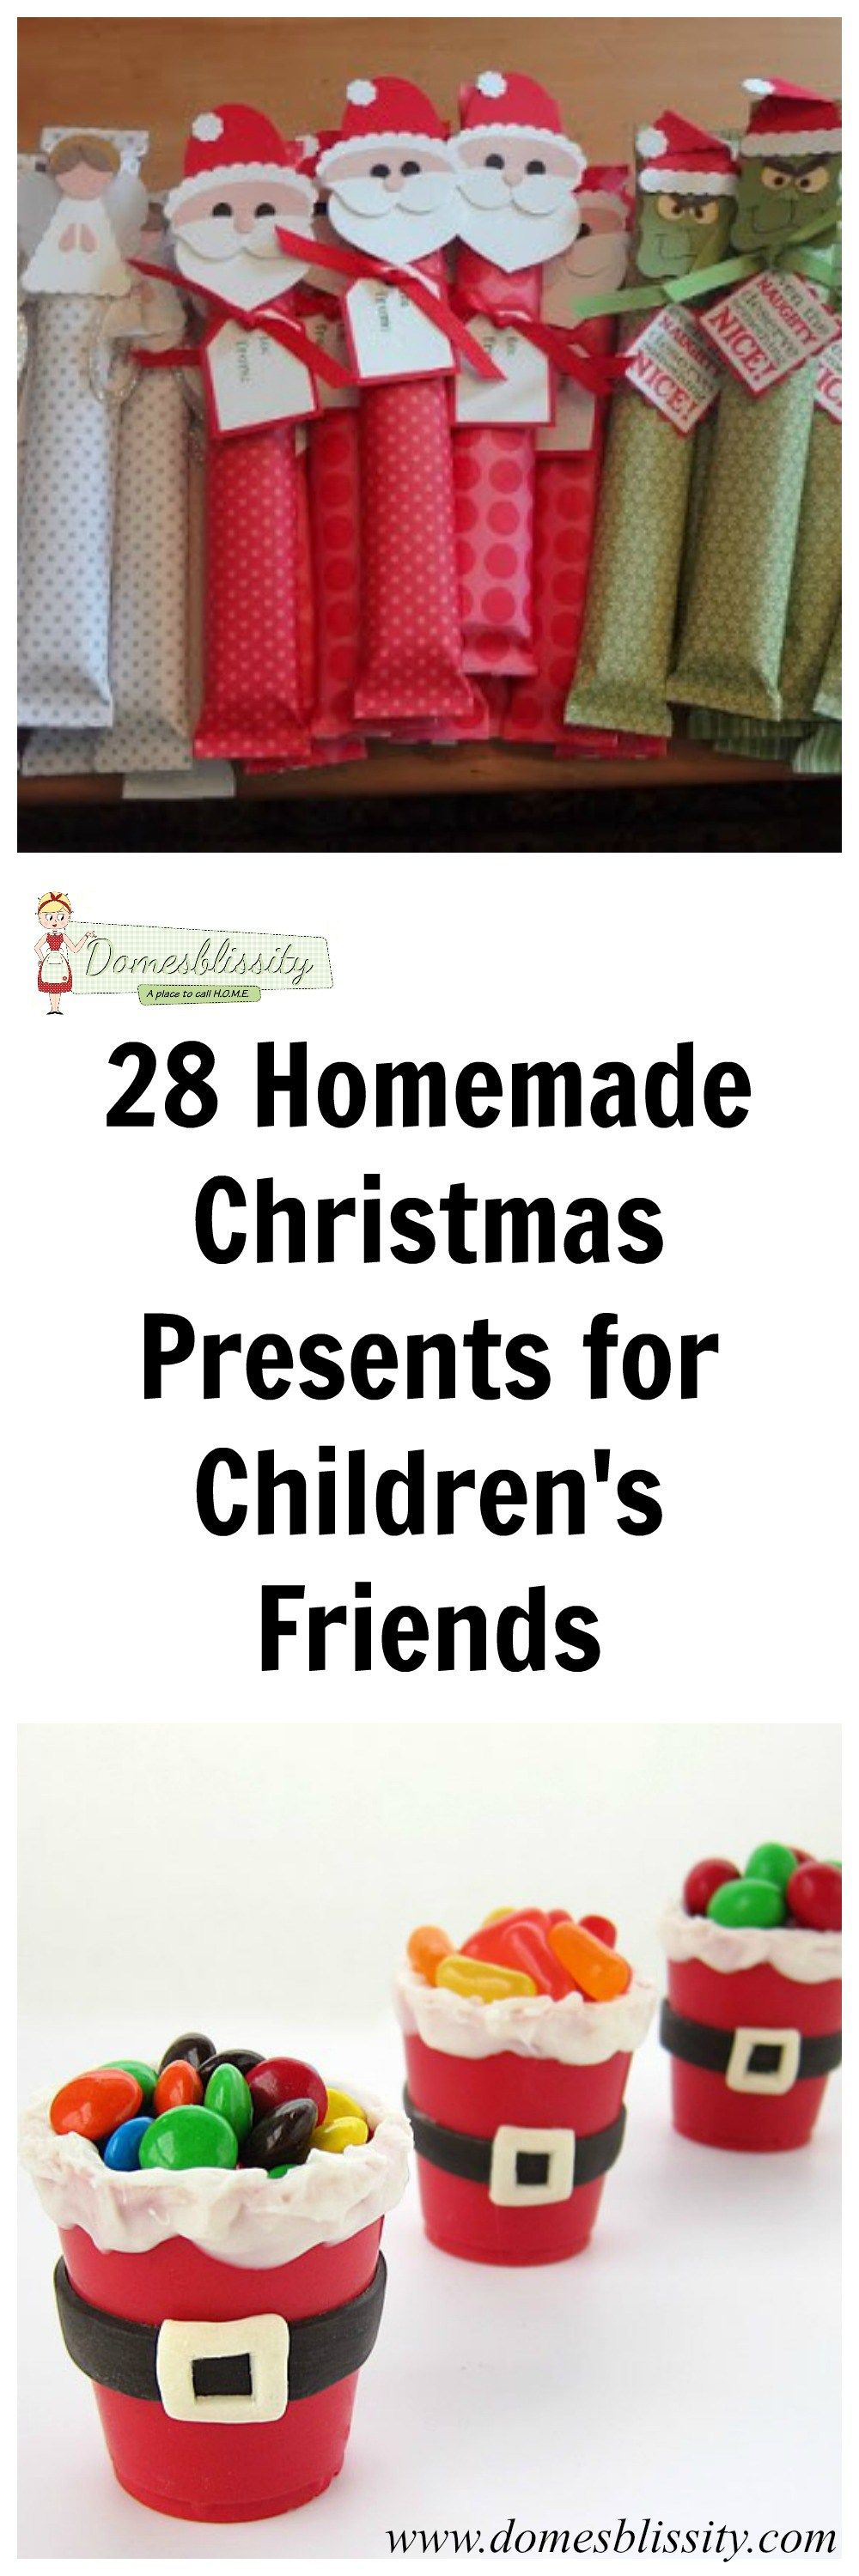 Last Week I Shared With You 21 Homemade Christmas Presents